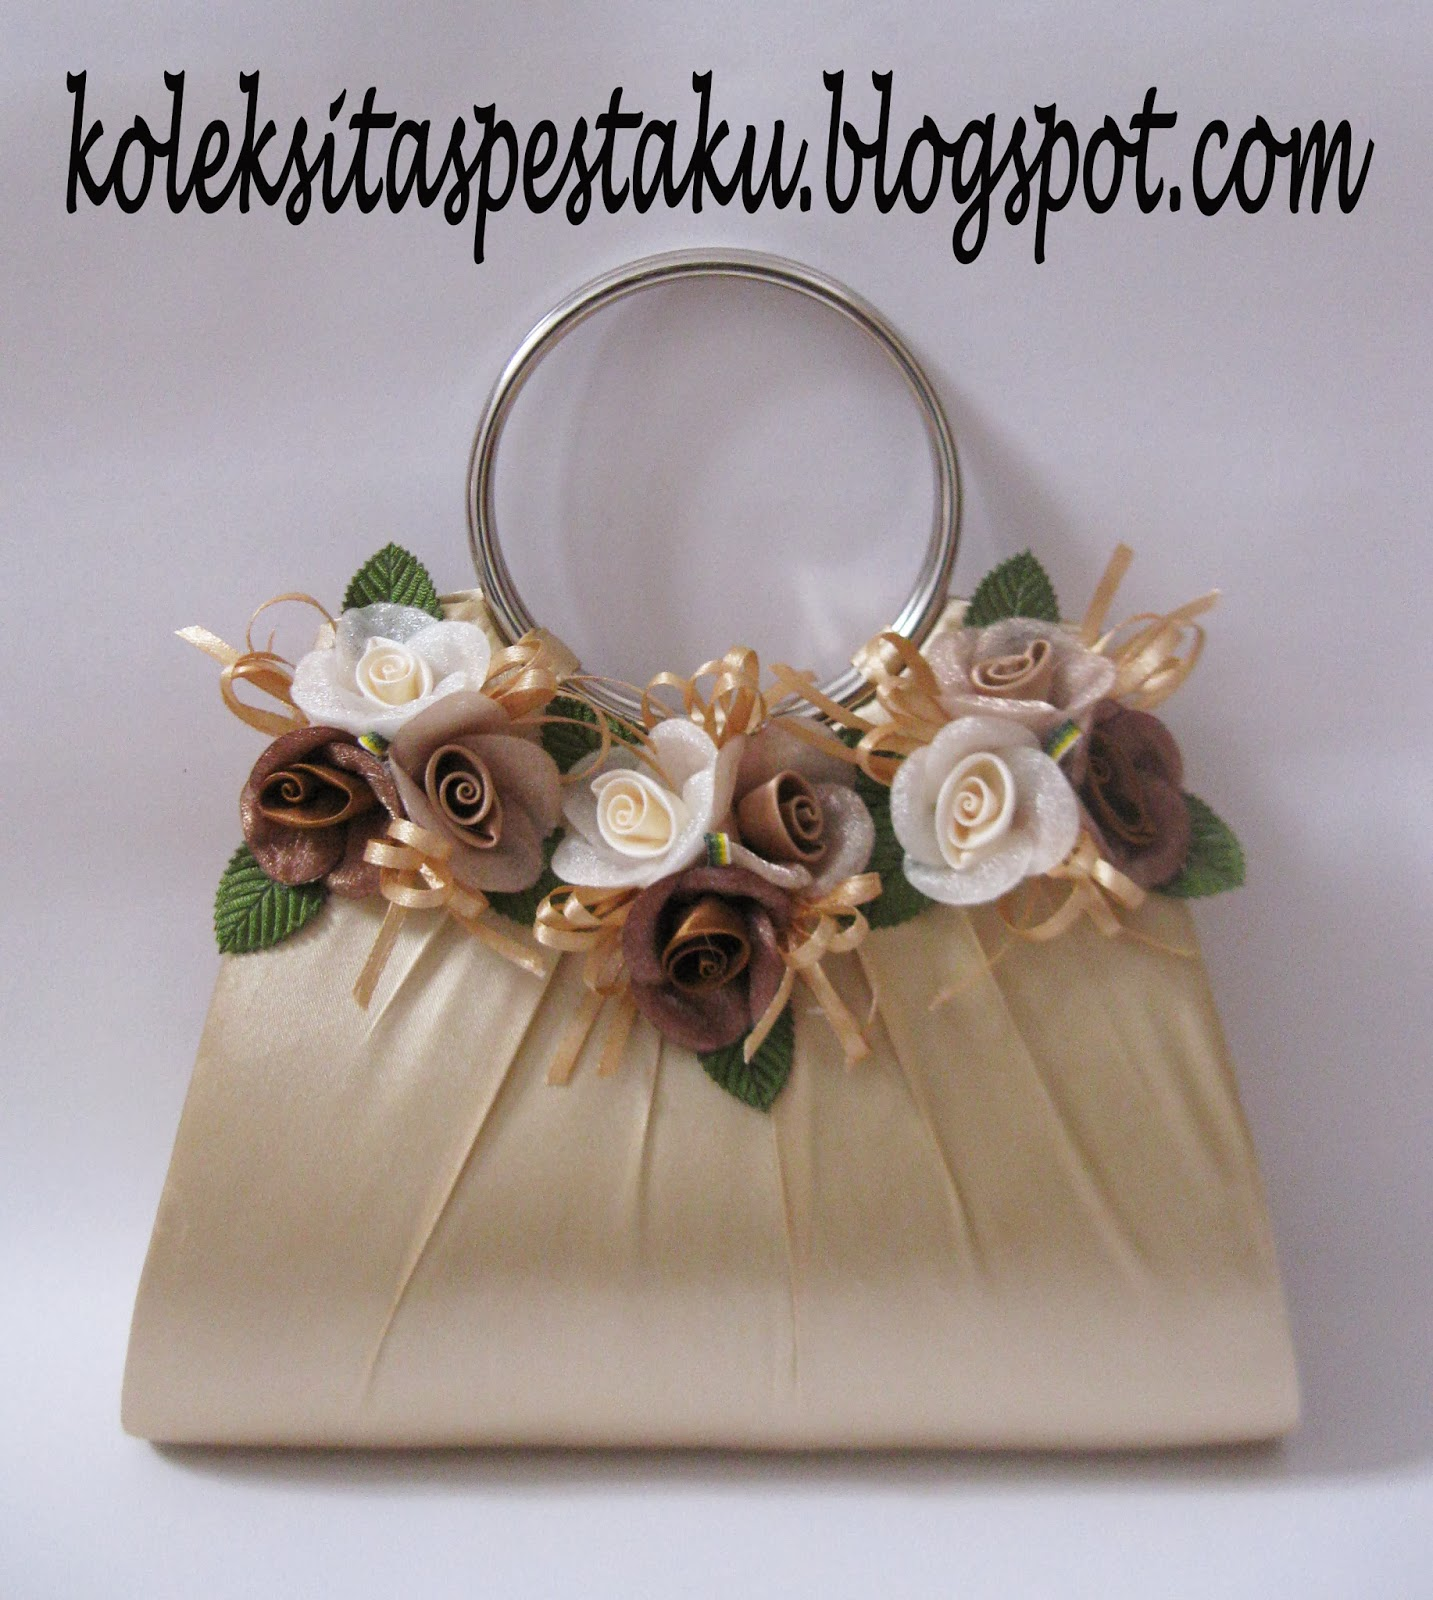 Bag Tas Pesta Unik Bunga Cream